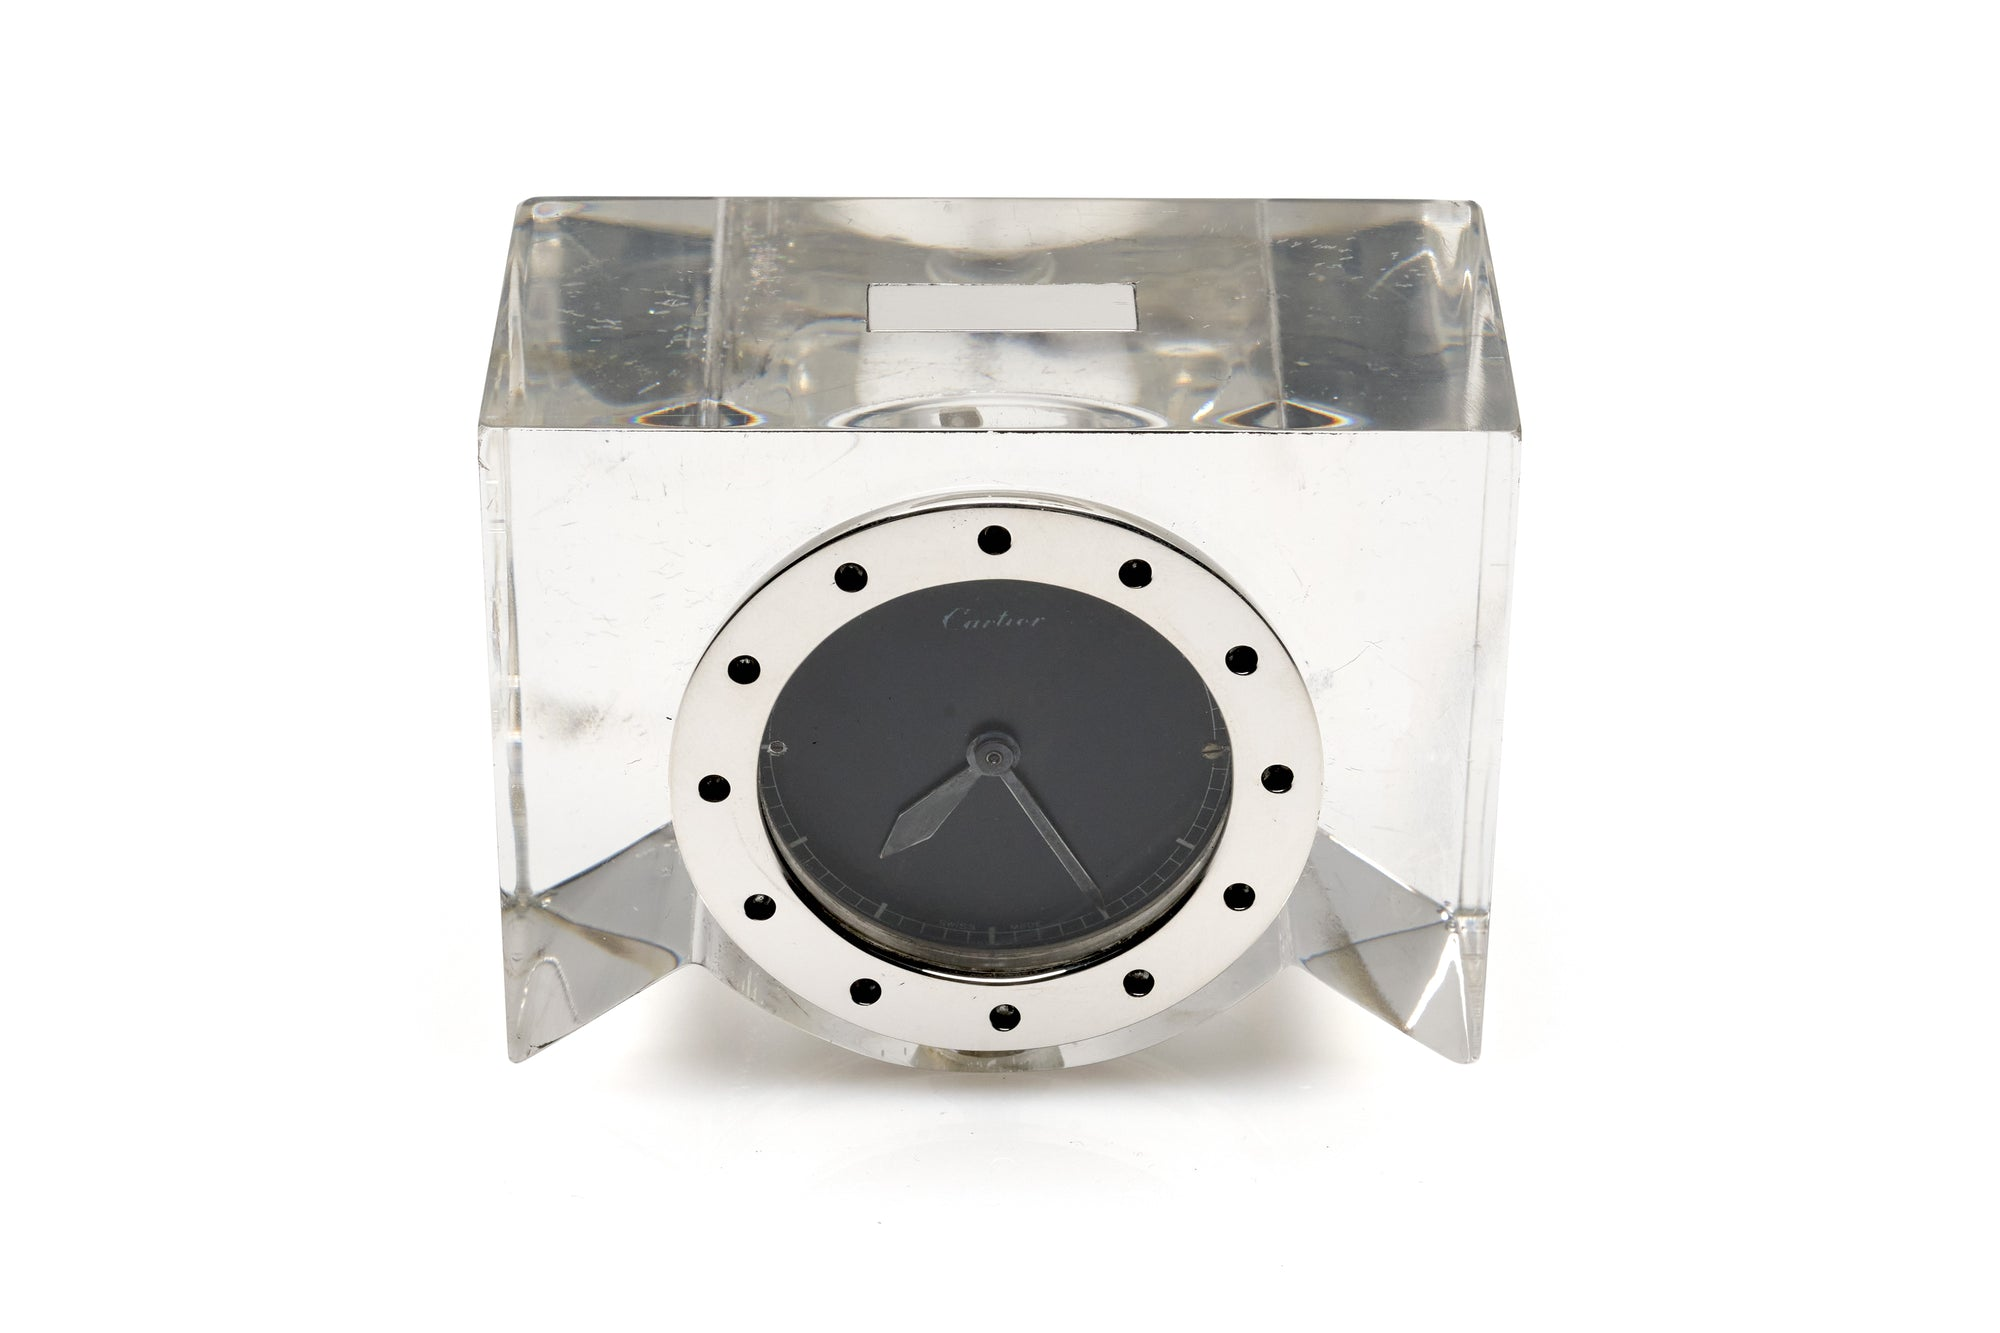 Cartier Sterling Silver & Lucite Clock